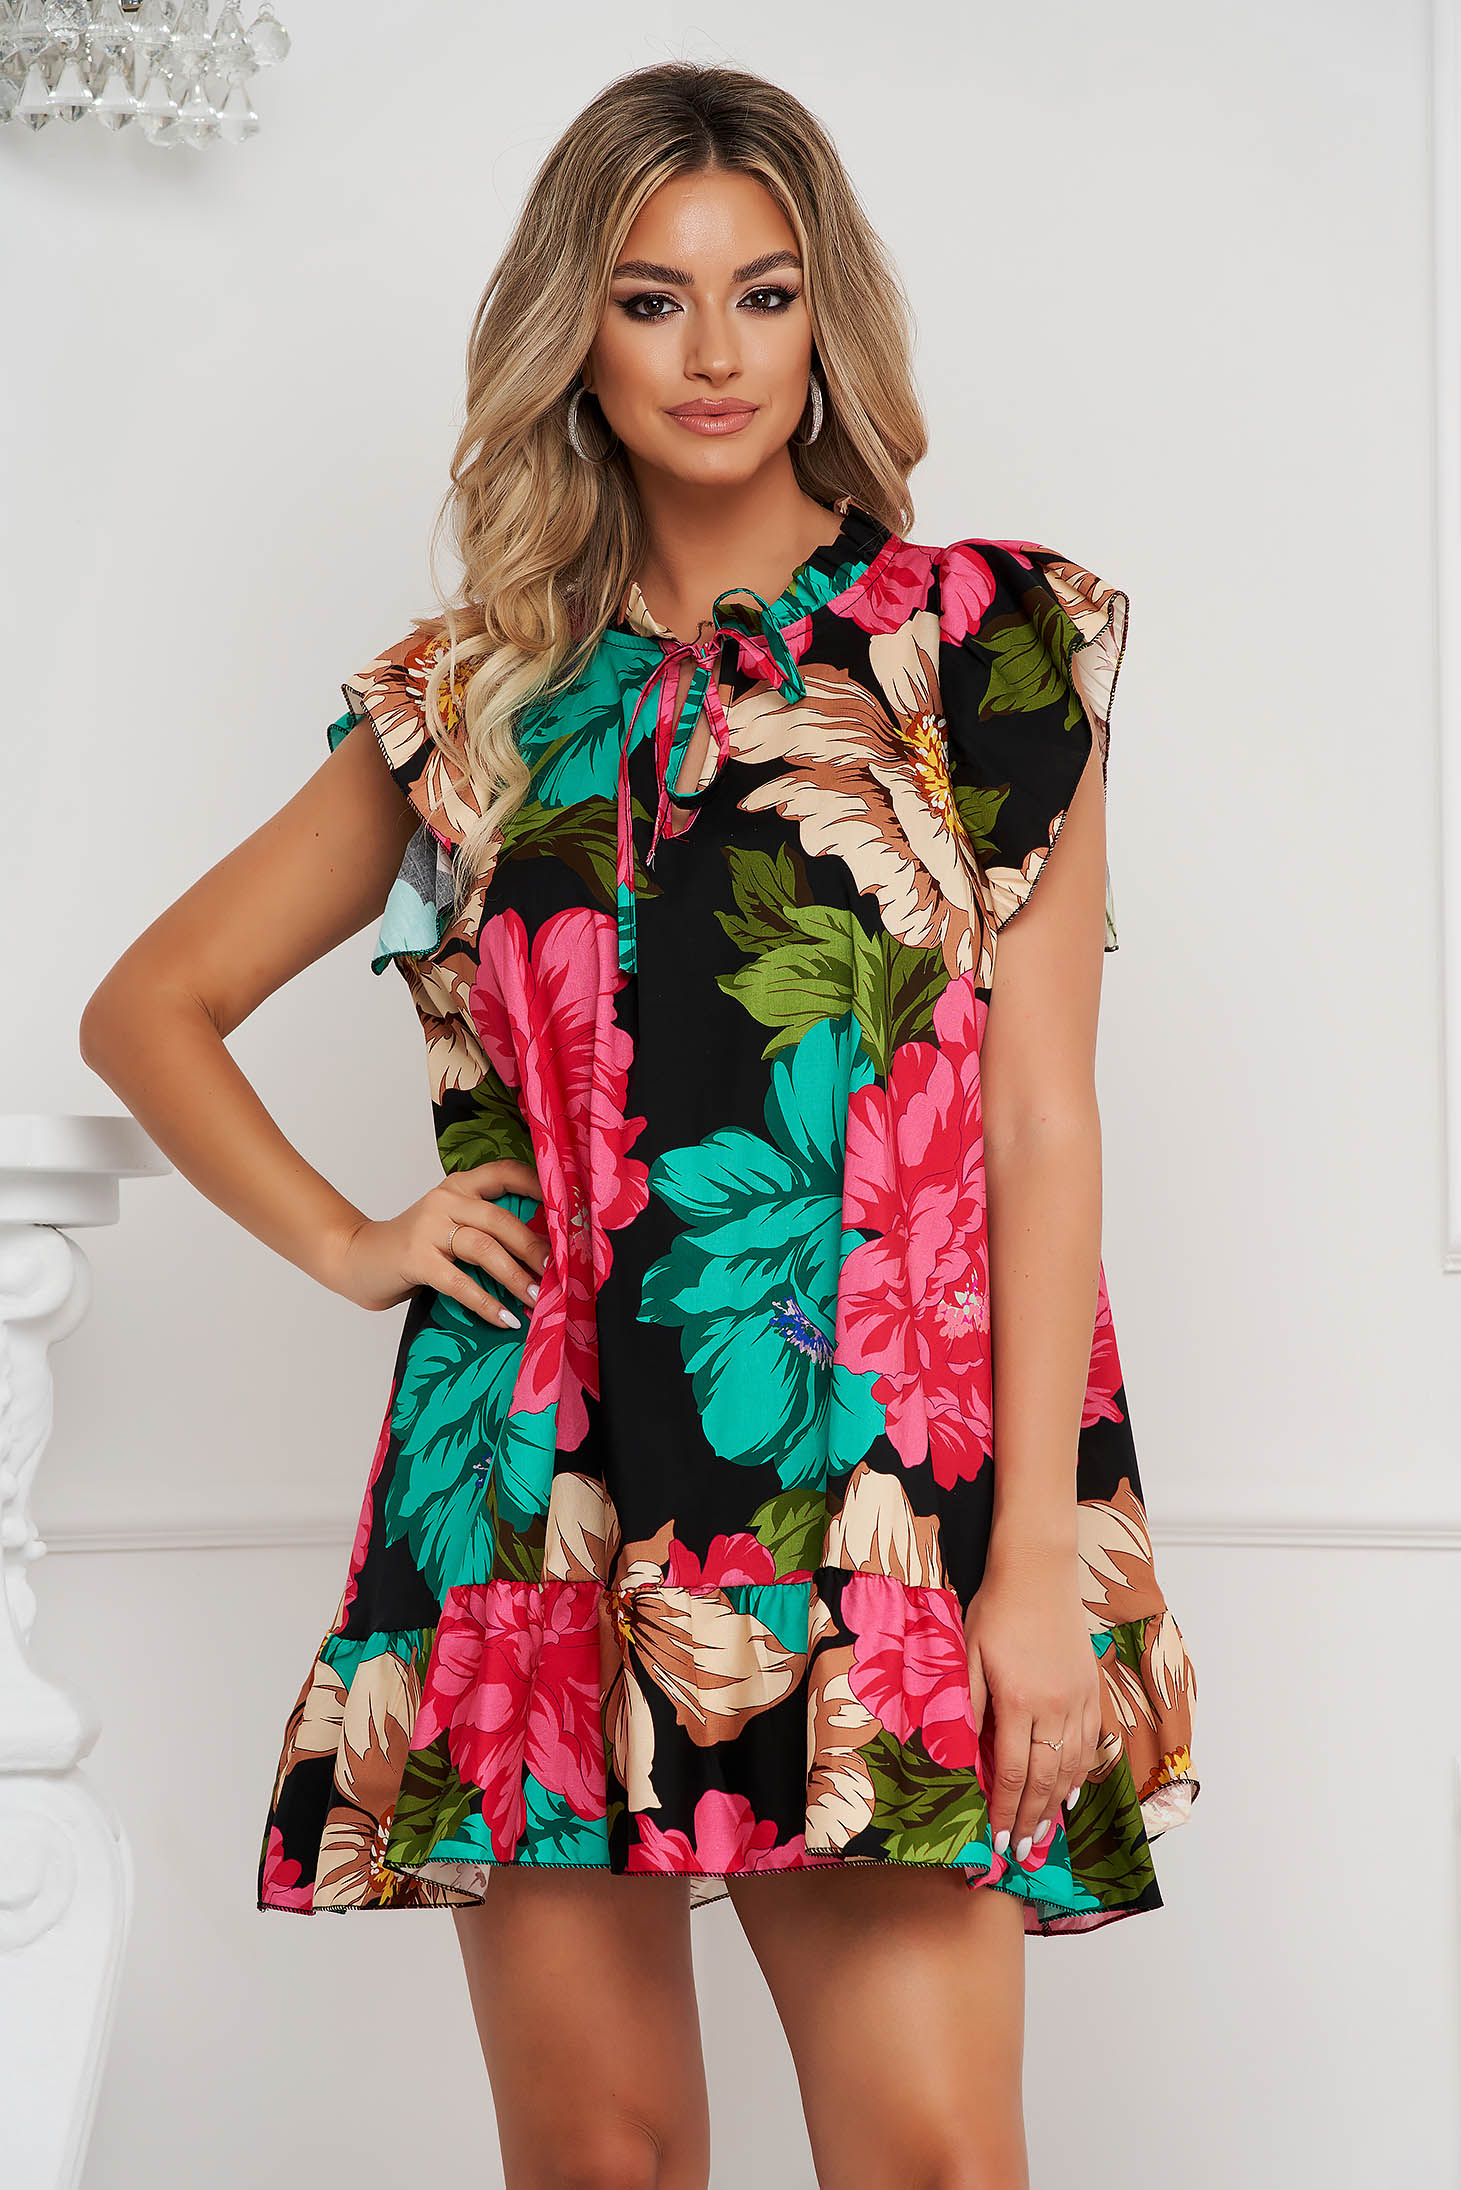 Dress loose fit short cut cotton thin fabric with ruffle details